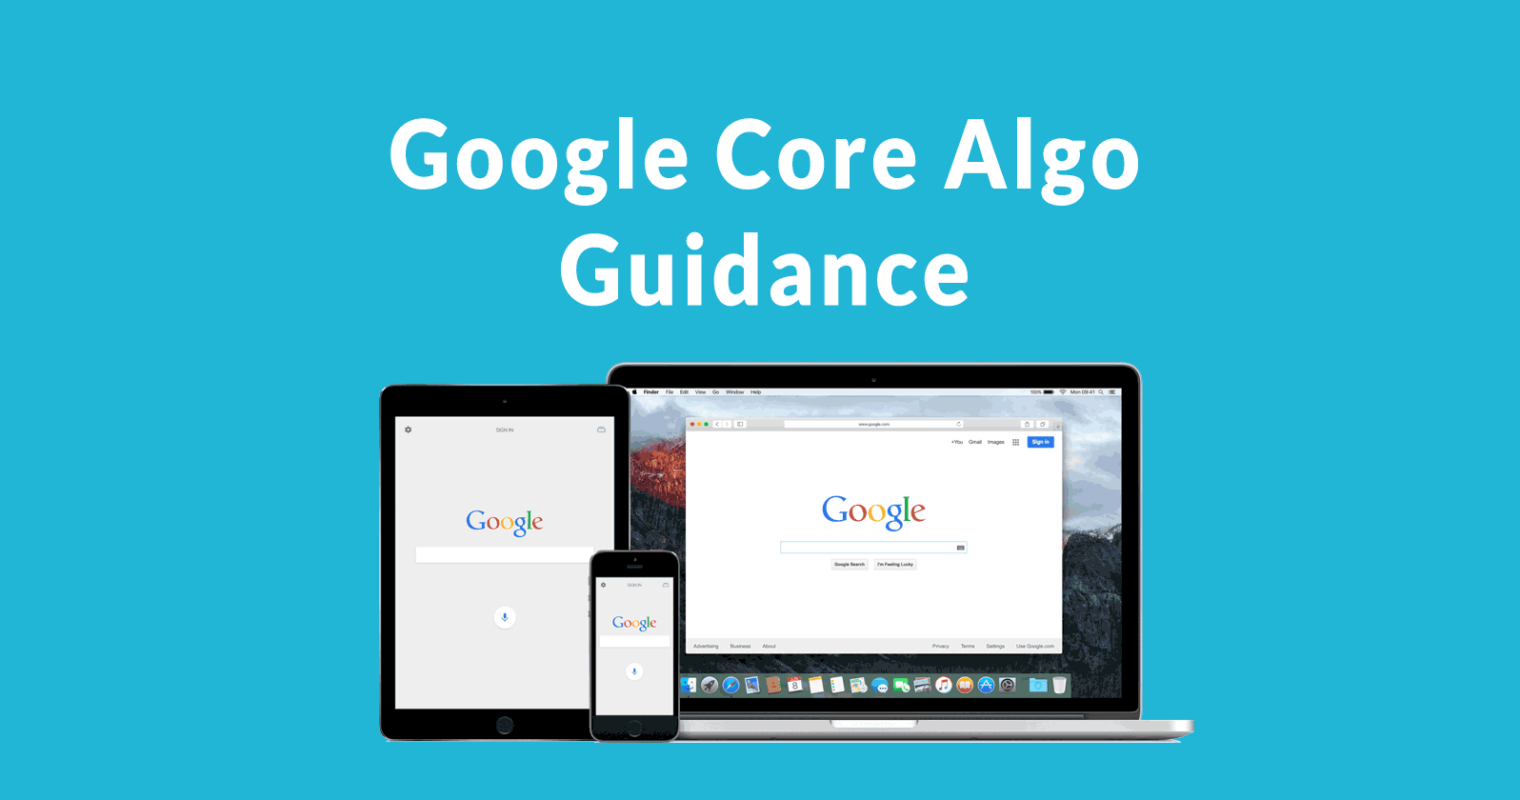 https://res.cloudinary.com/dpyy9uysx/image/upload/v1565067171/seo/google-algo-update-guidance.png